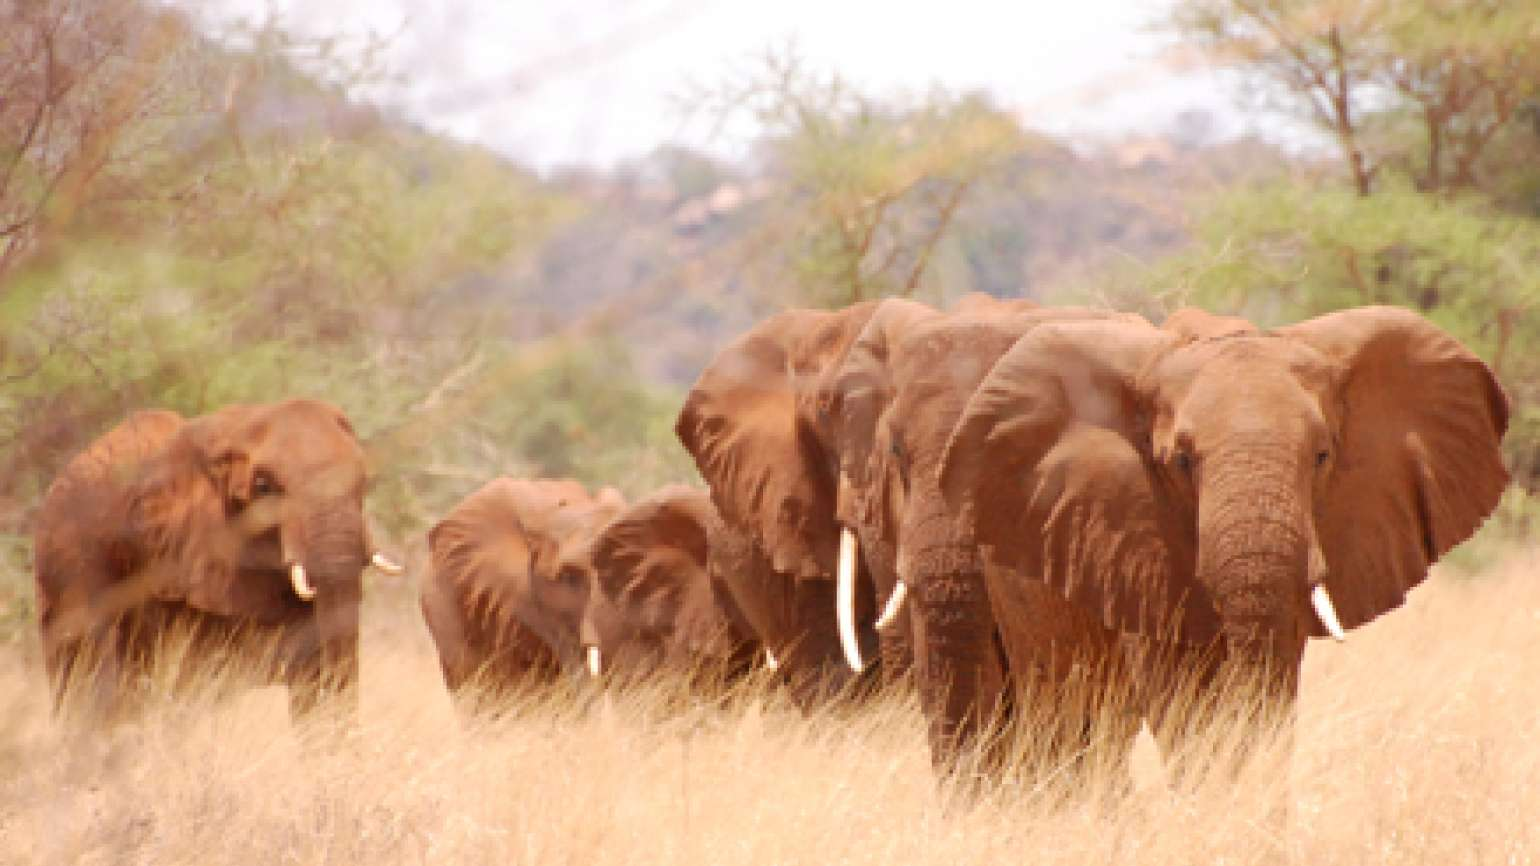 Elephants photographed by Guideposts president and CEO Richard Hopple on safari